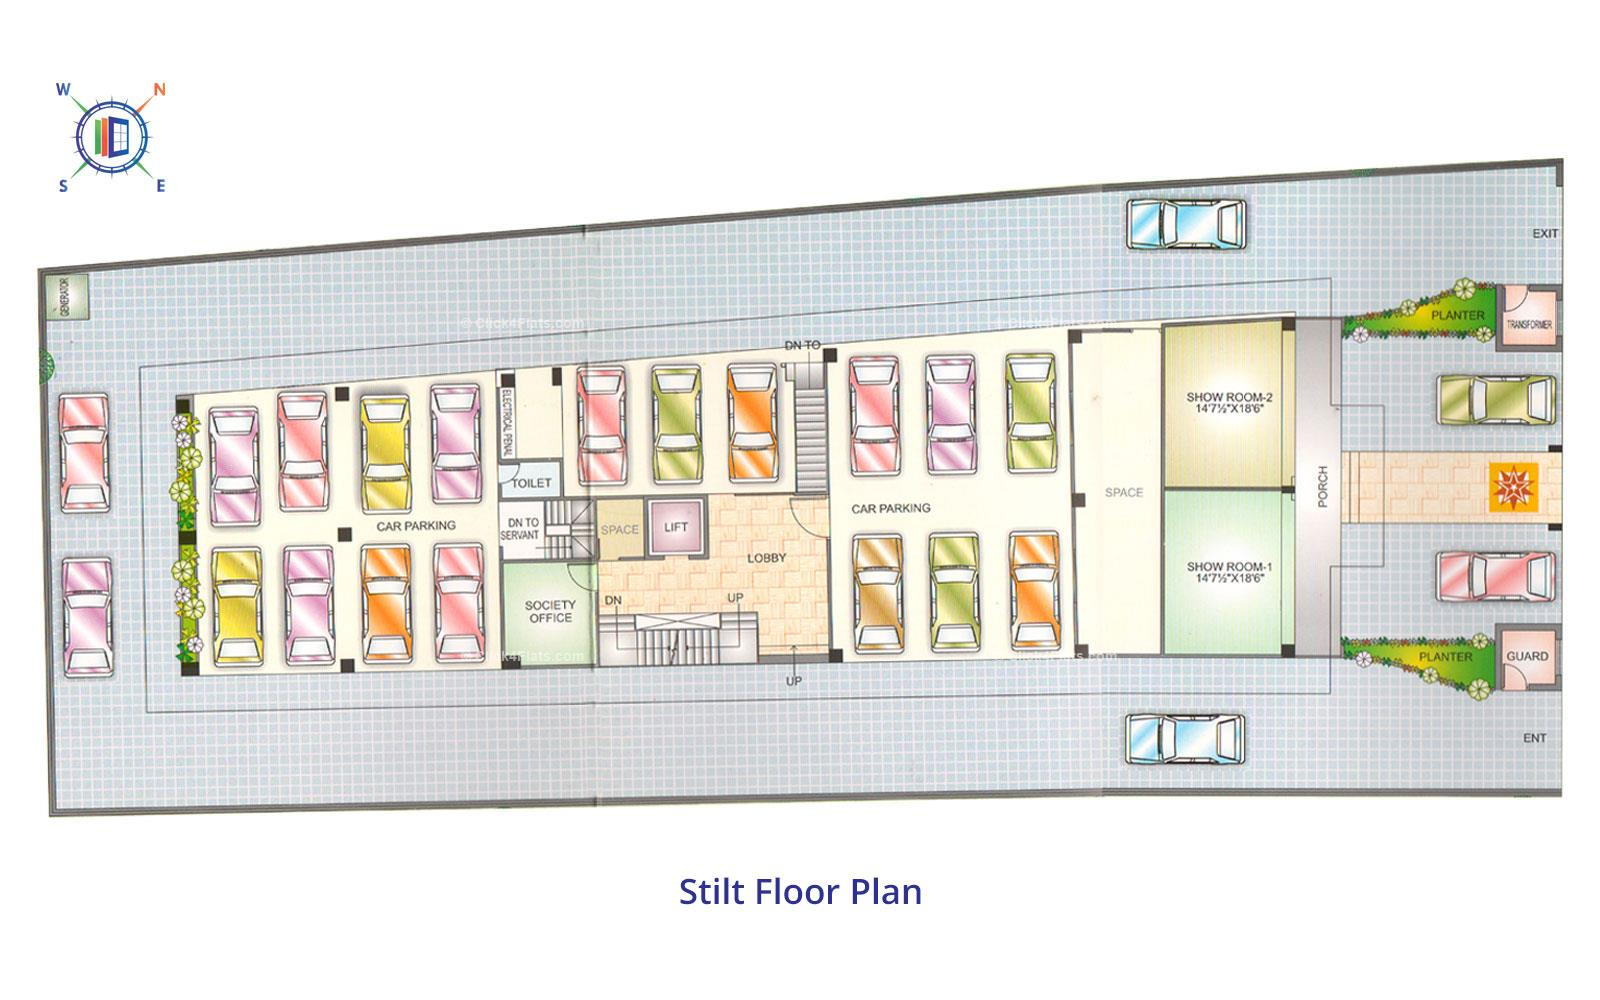 Blue Sky Apartments Stilt Floor Plan